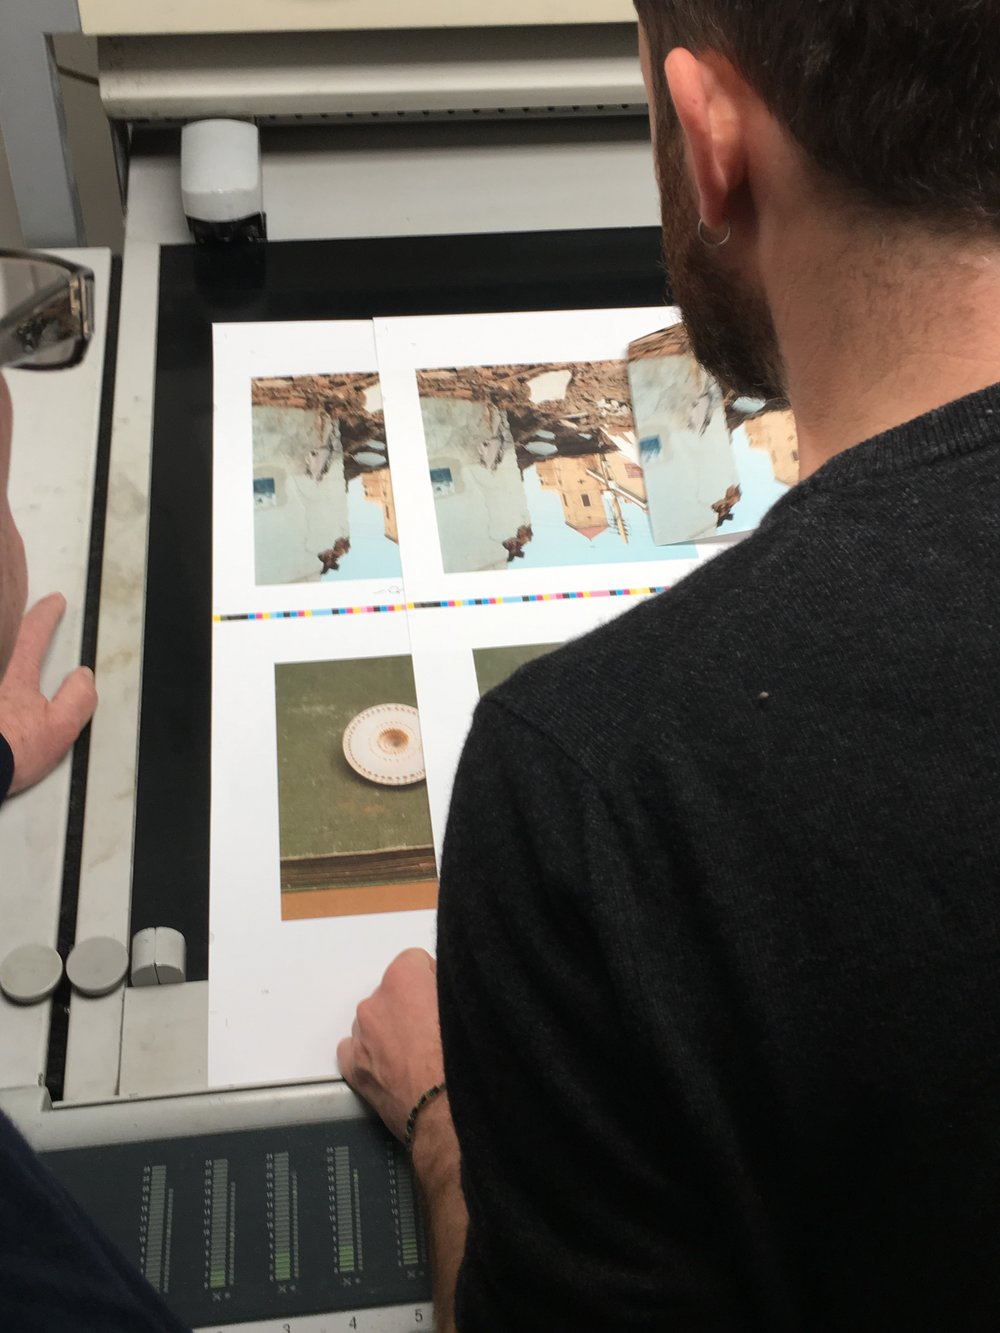 Federico checking colors during the production of the book